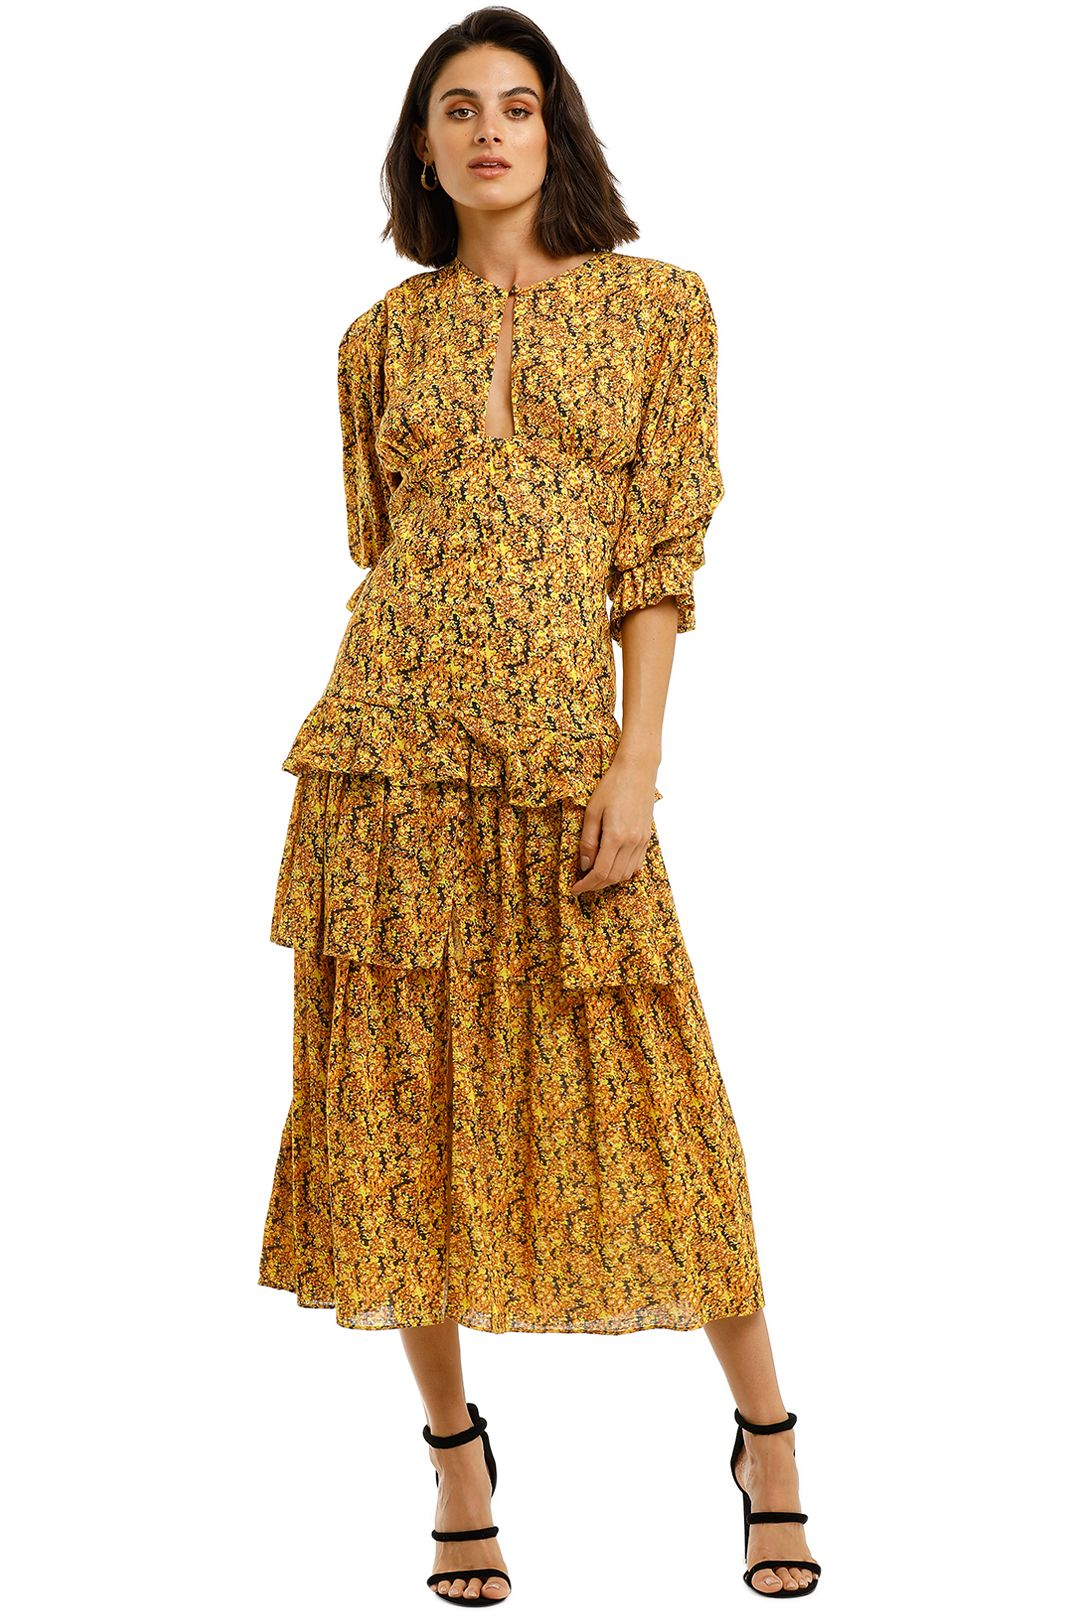 C&M-Camilla-And-Marc-Rimini-Tiered-Dress-Asterid-Print-Front